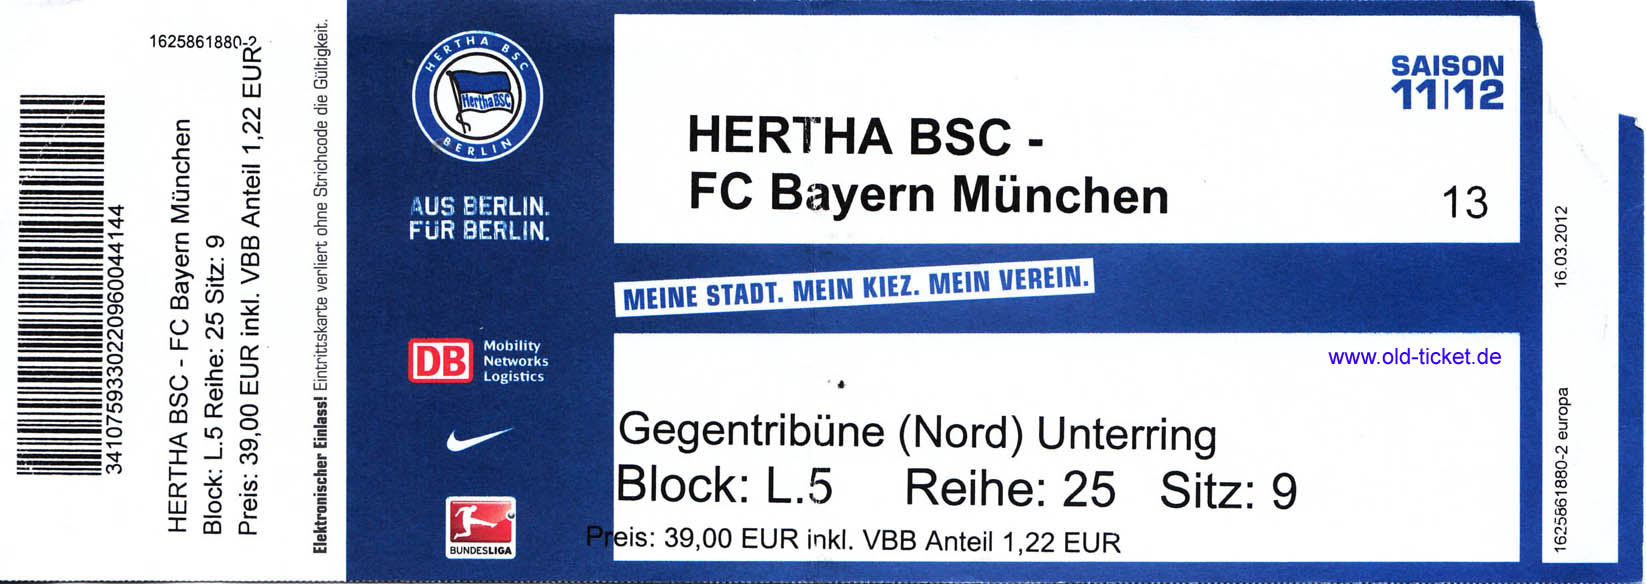 how to buy hertha berlin tickets